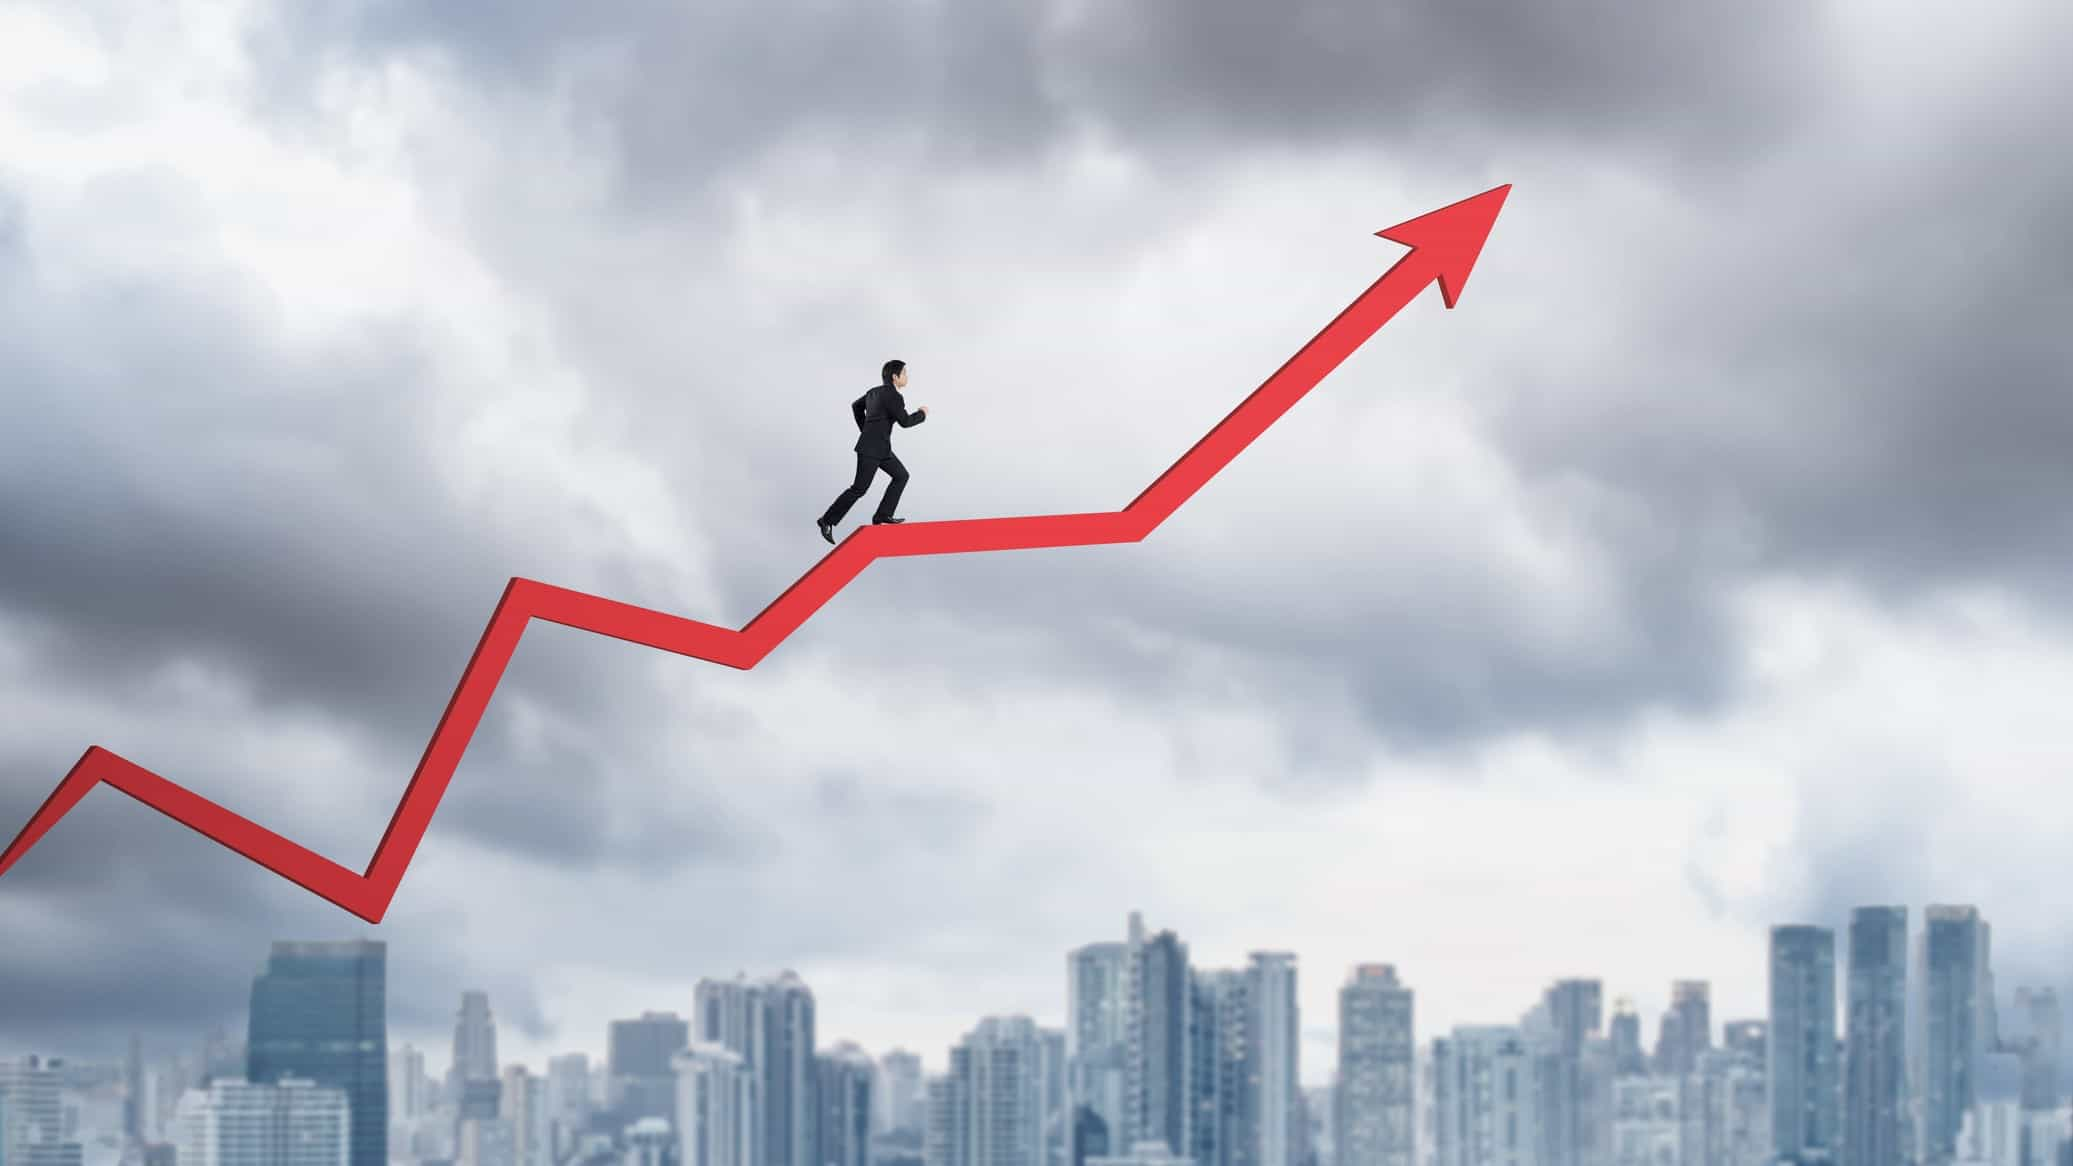 man walking up line graph, into clouds, representing asx shares at an all time high